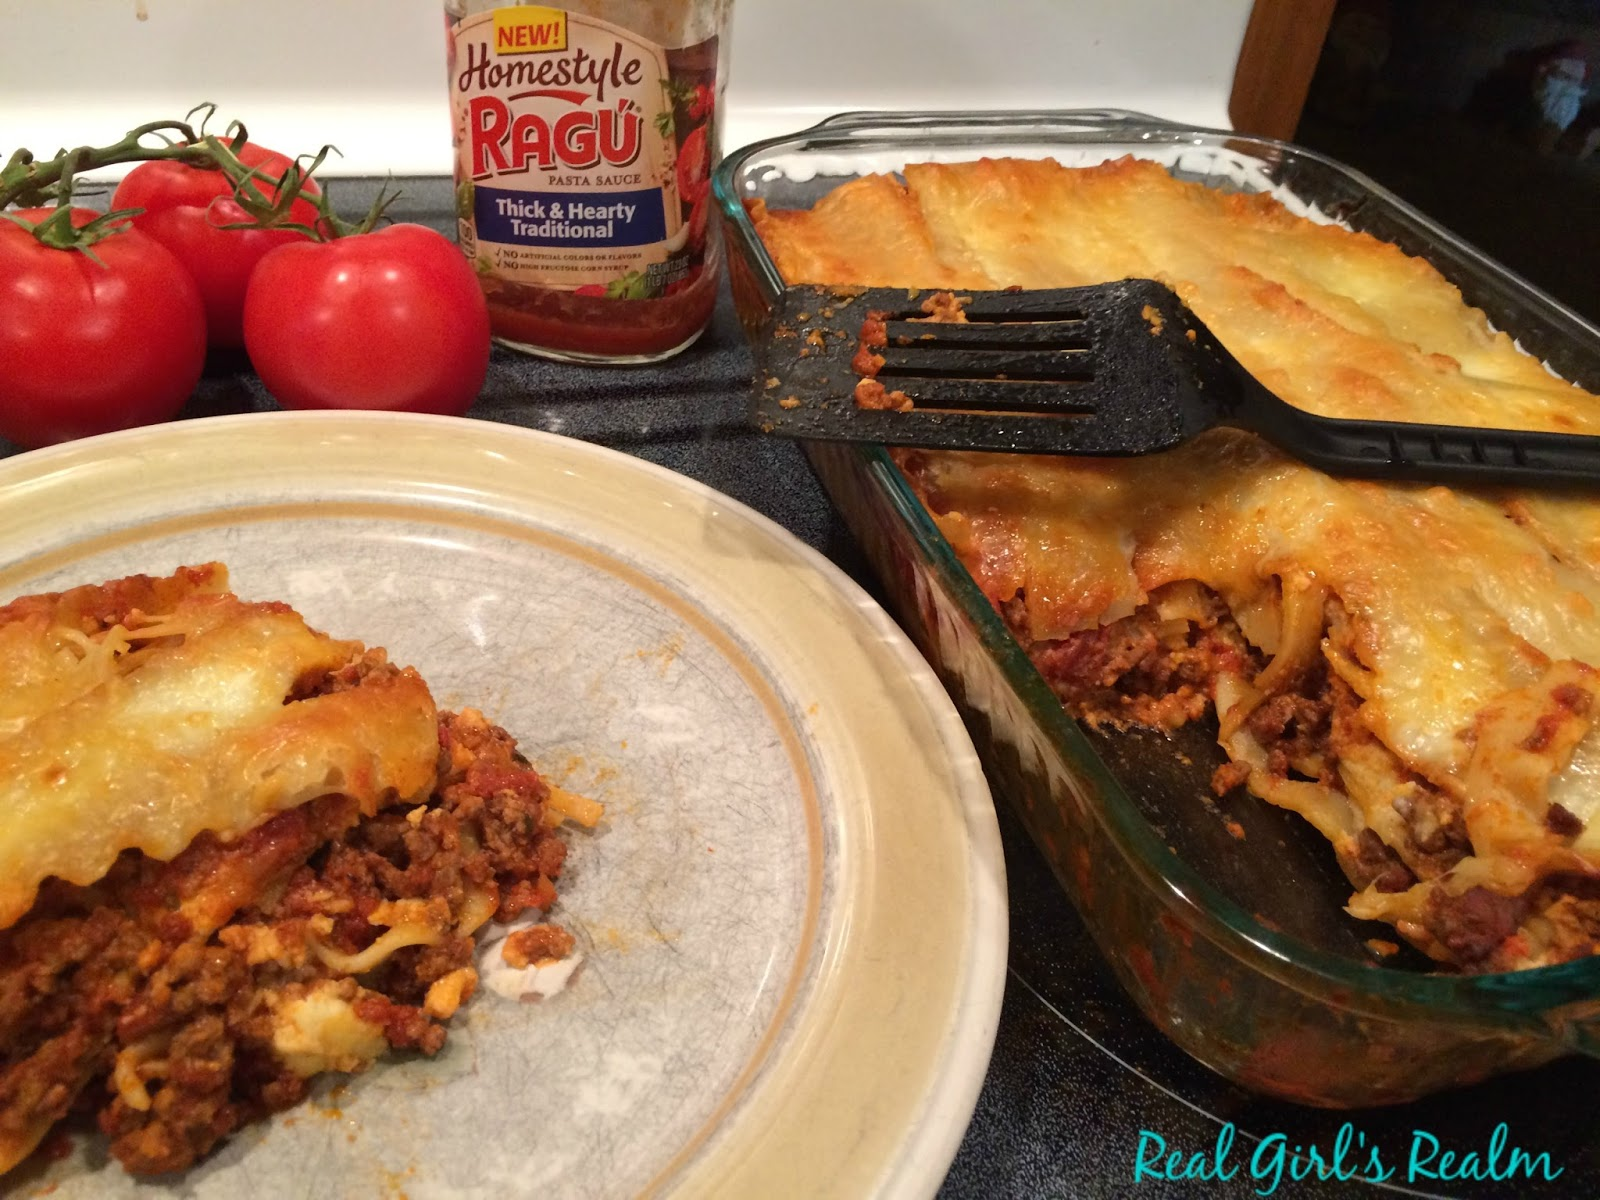 ... : Celebrating Mom with Homestyle Lasagna - Featuring Ragu Pasta Sauce